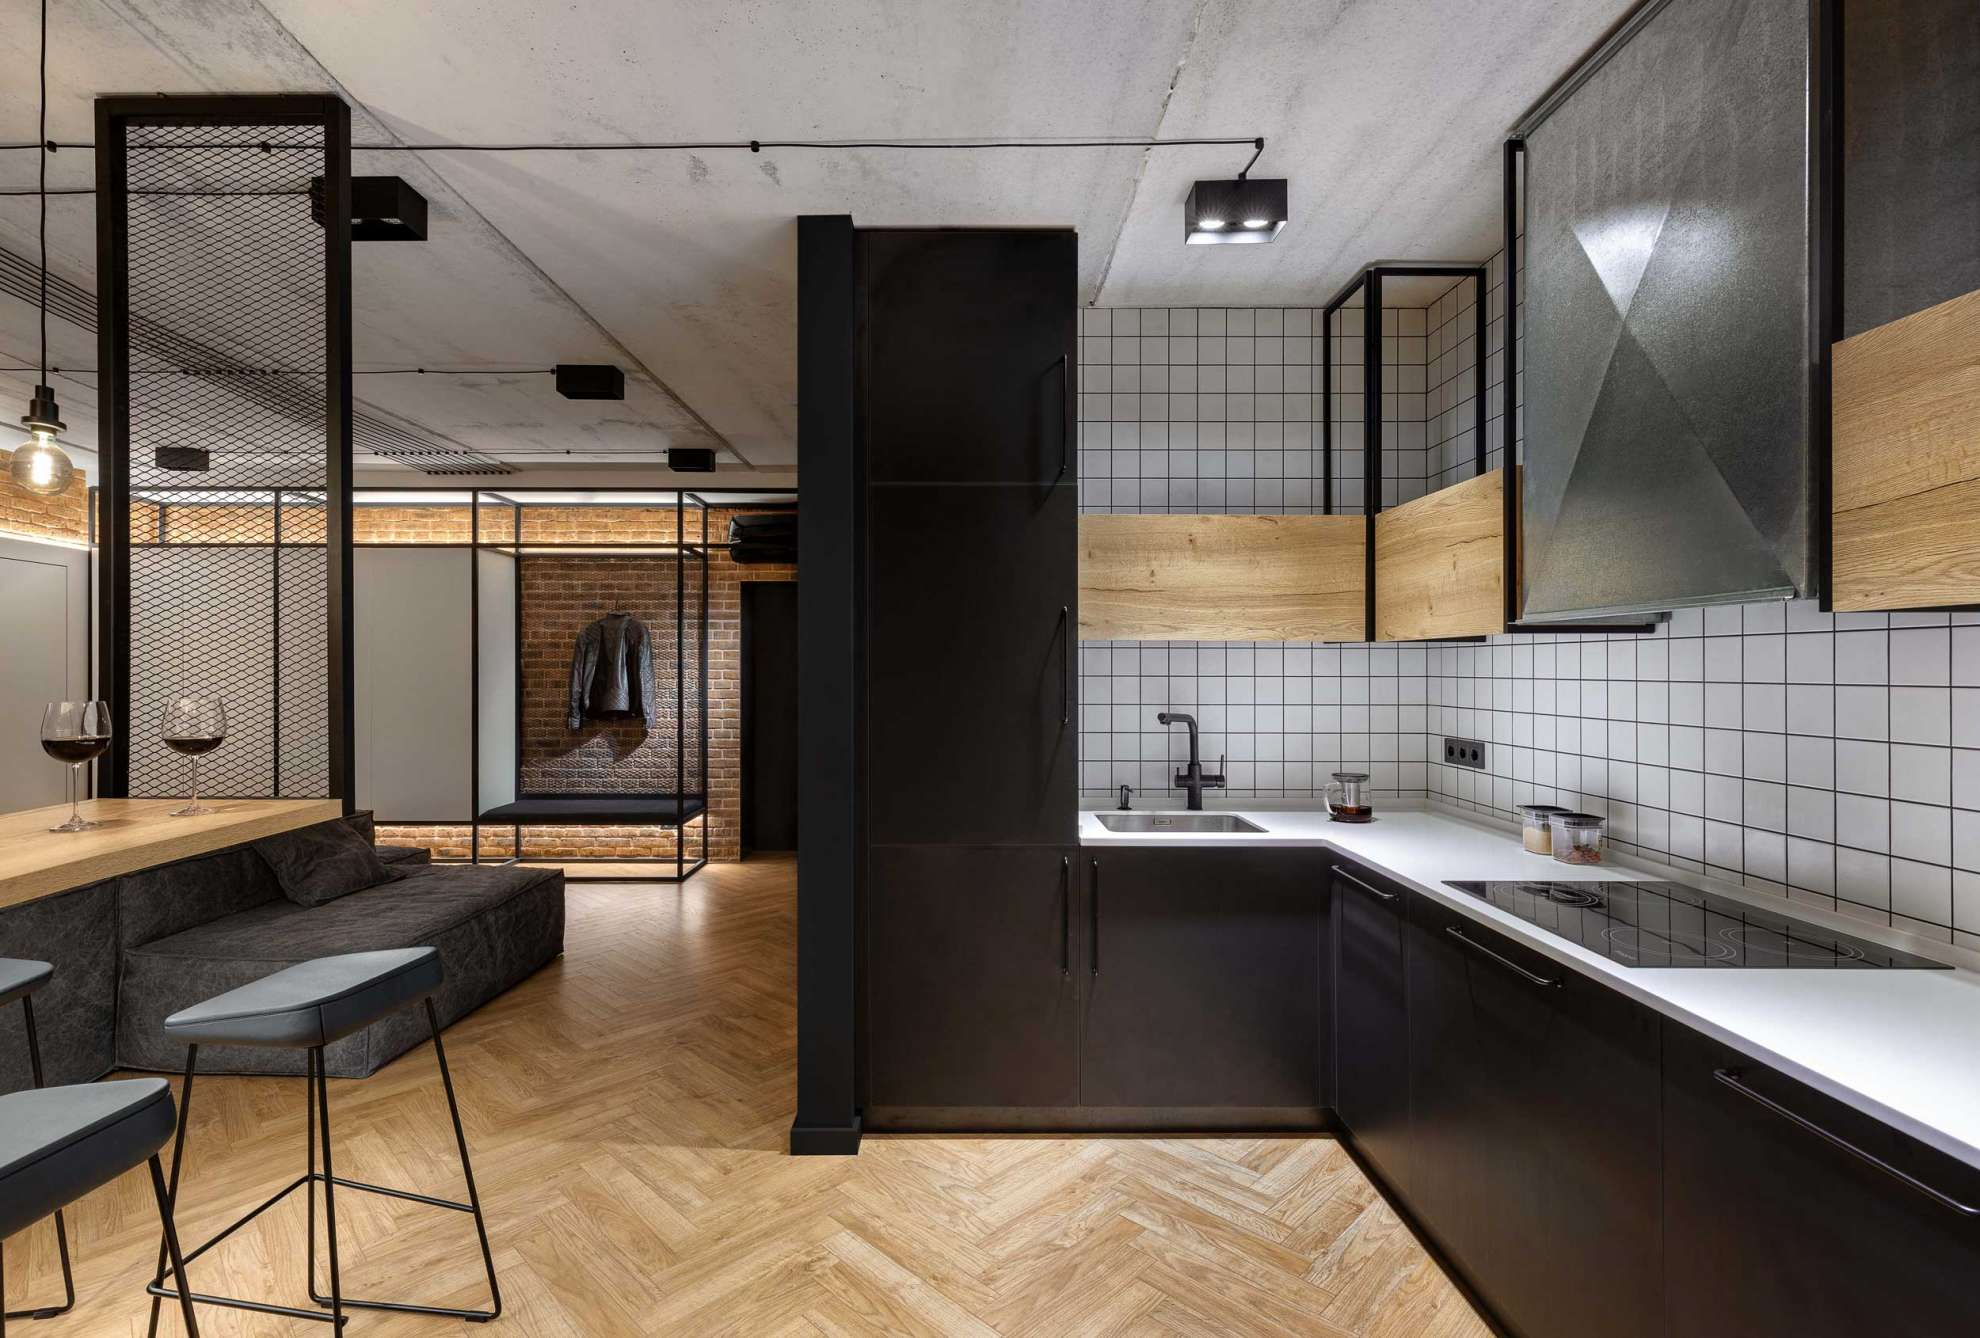 kitchen-loft-interior-design.jpg